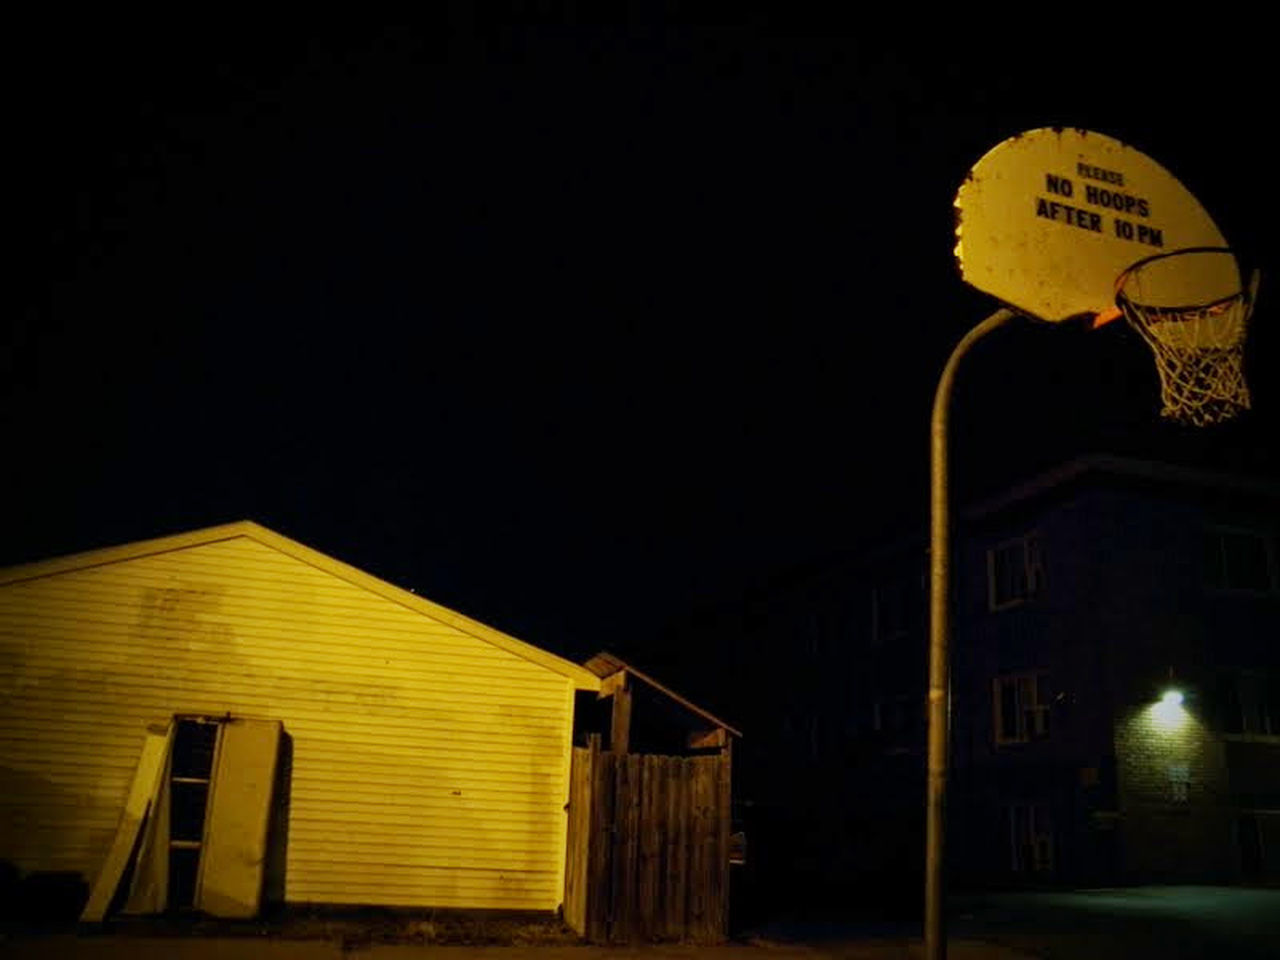 night, illuminated, outdoors, no people, building exterior, yellow, street light, architecture, built structure, sky, neon